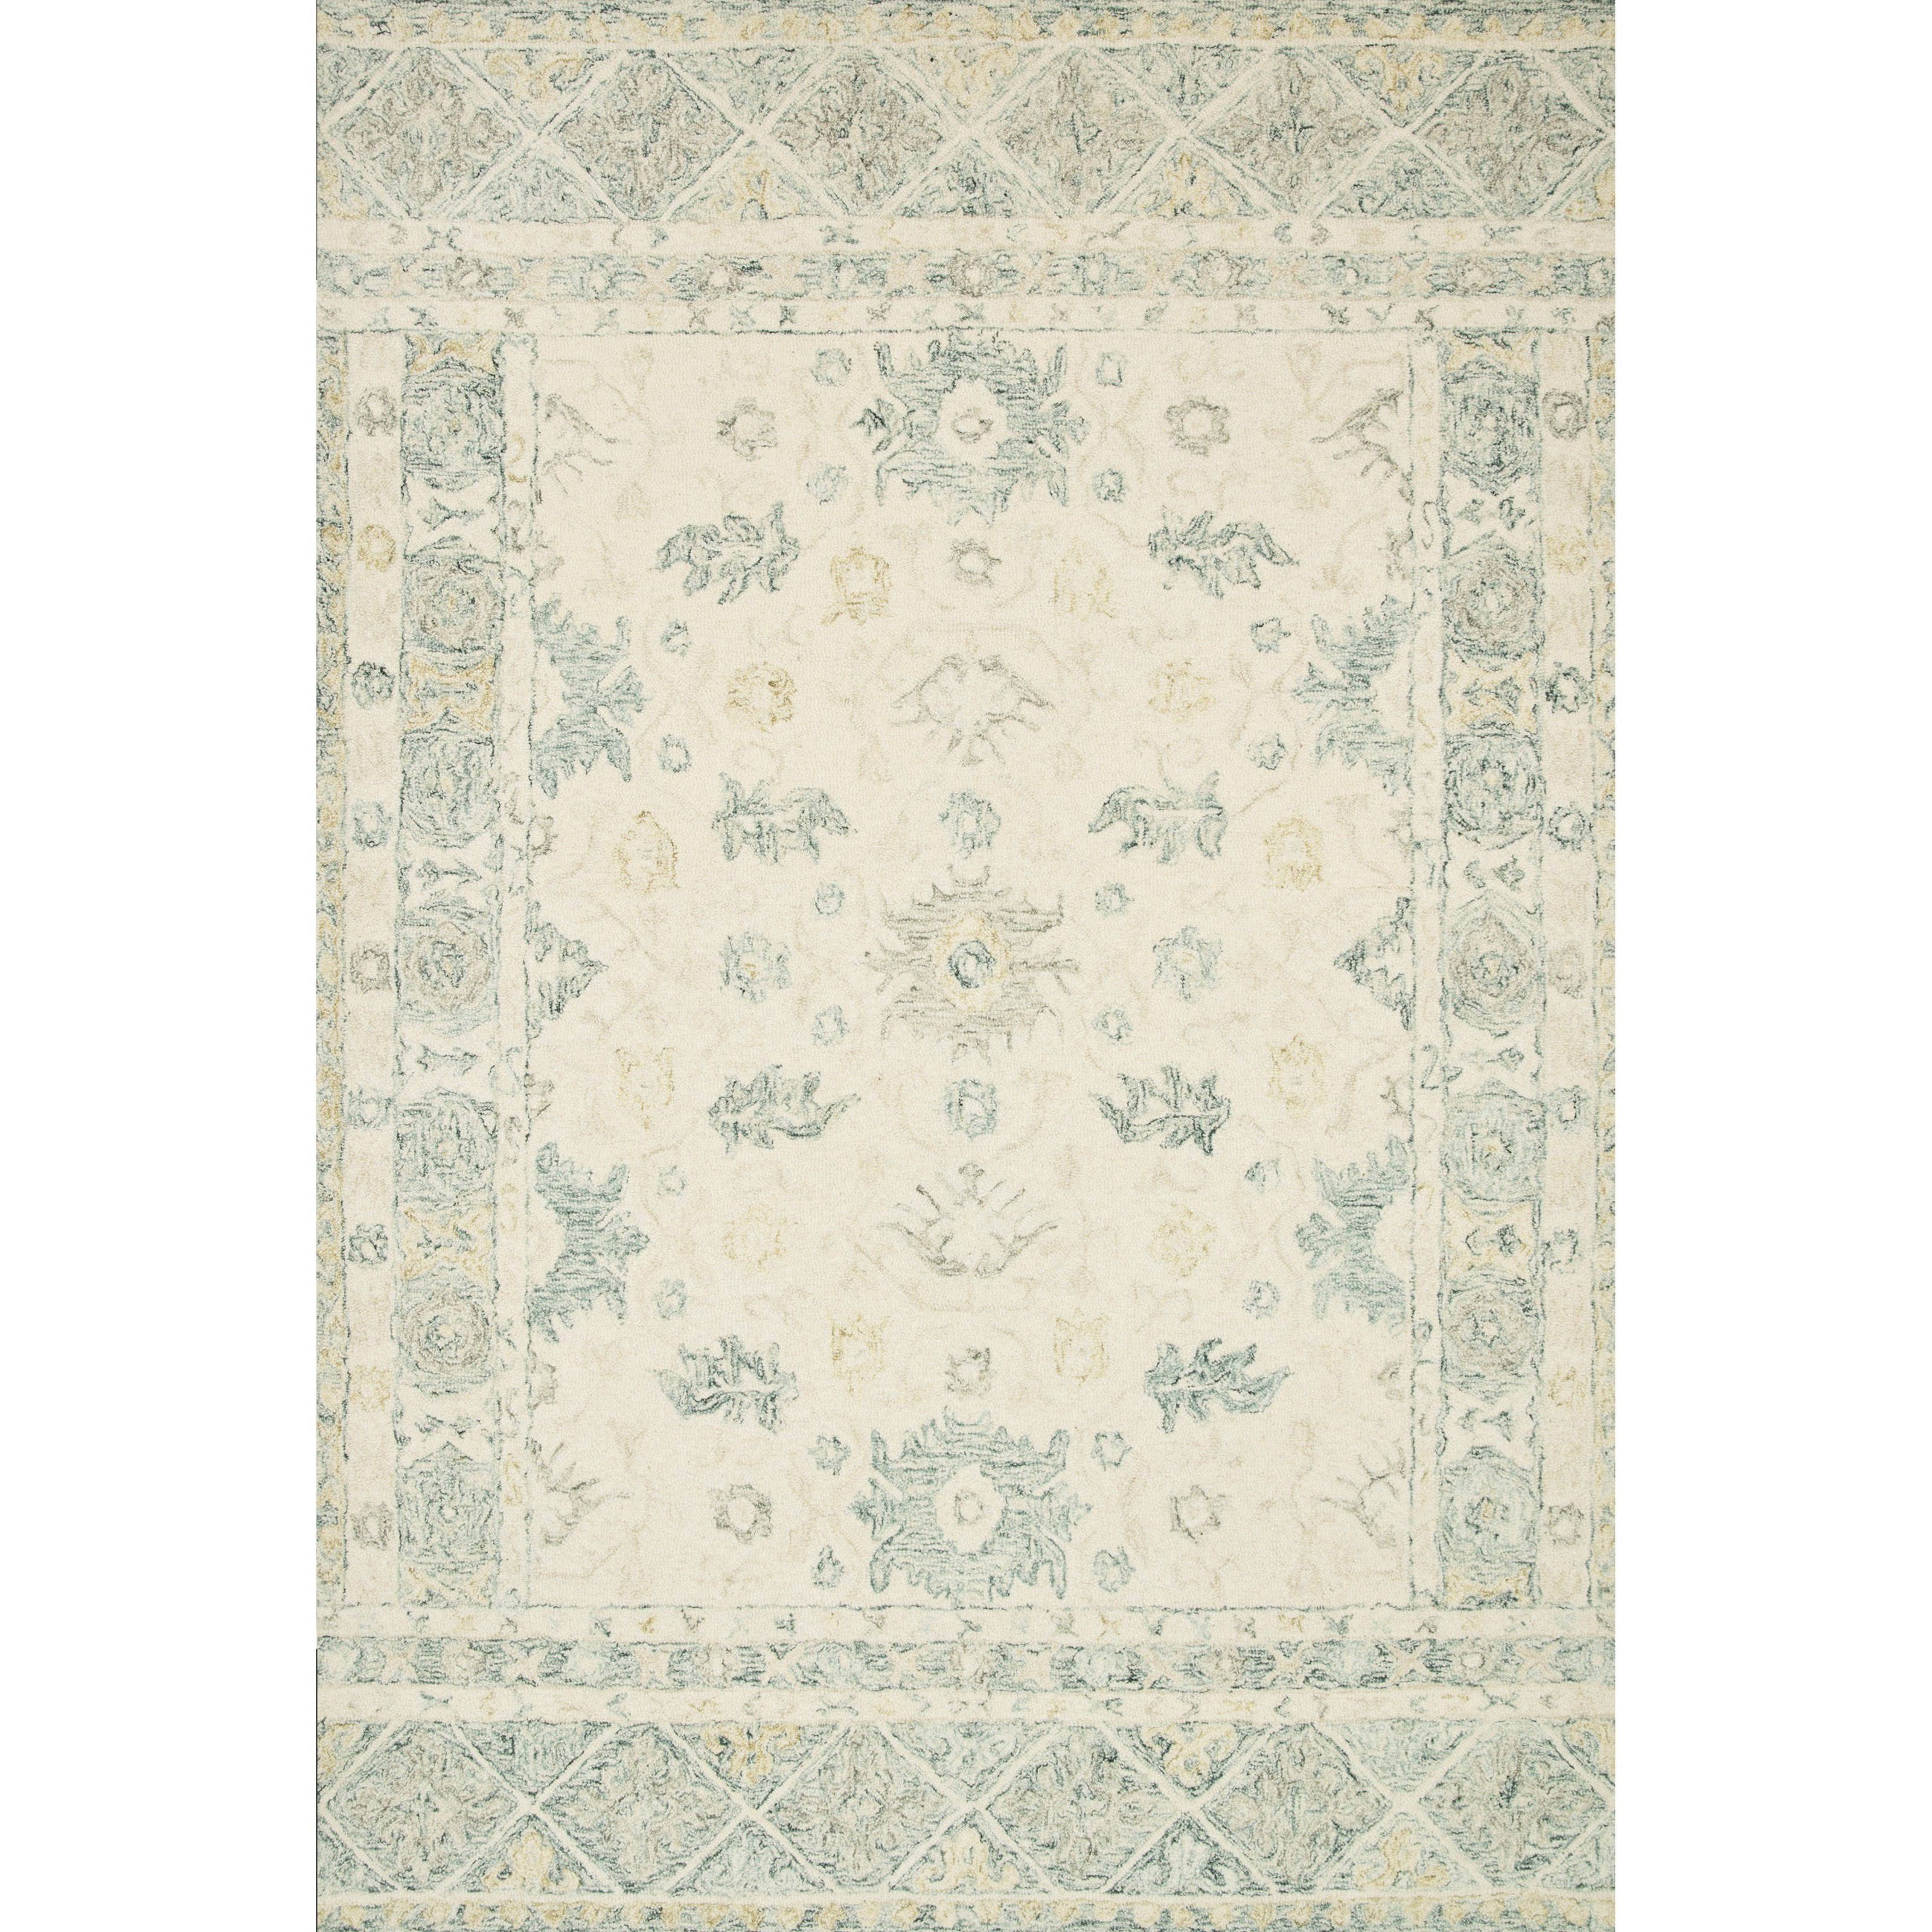 """Norabel 8'6"""" x 12' Ivory / Slate Rug by Loloi Rugs at Virginia Furniture Market"""